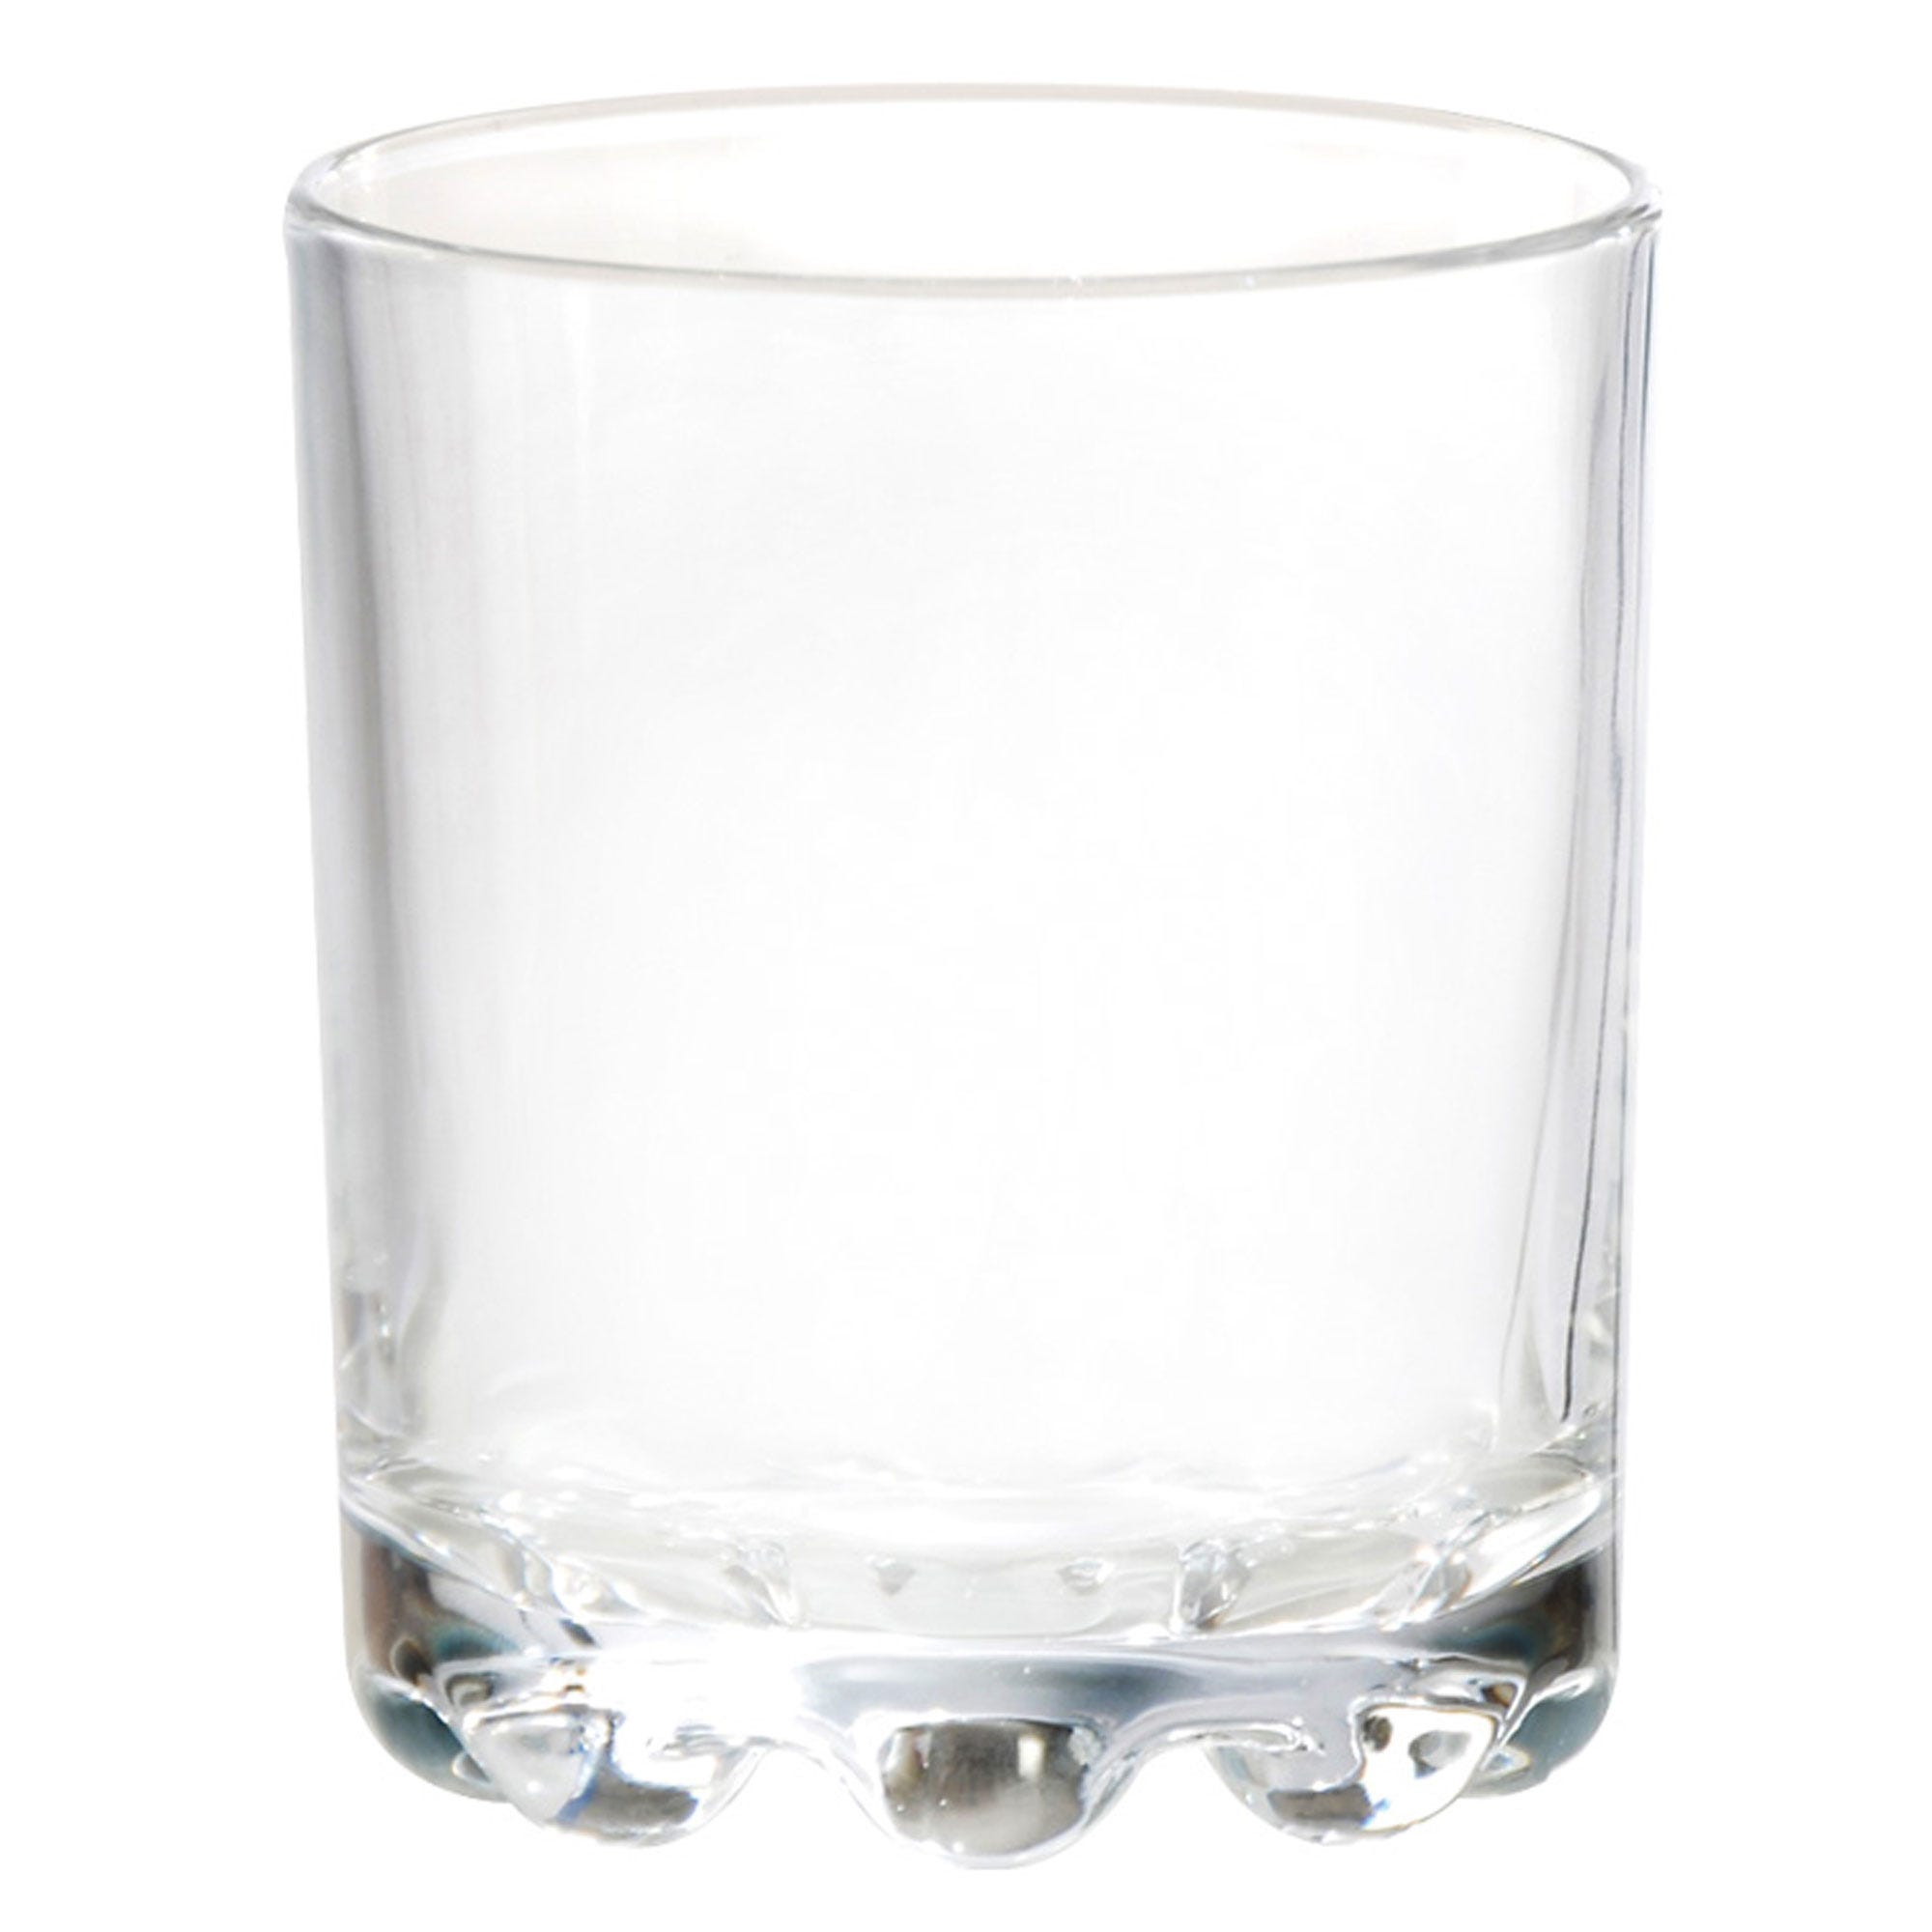 Image of Ravenhead Essentials Mixer Glasses – Set of 4